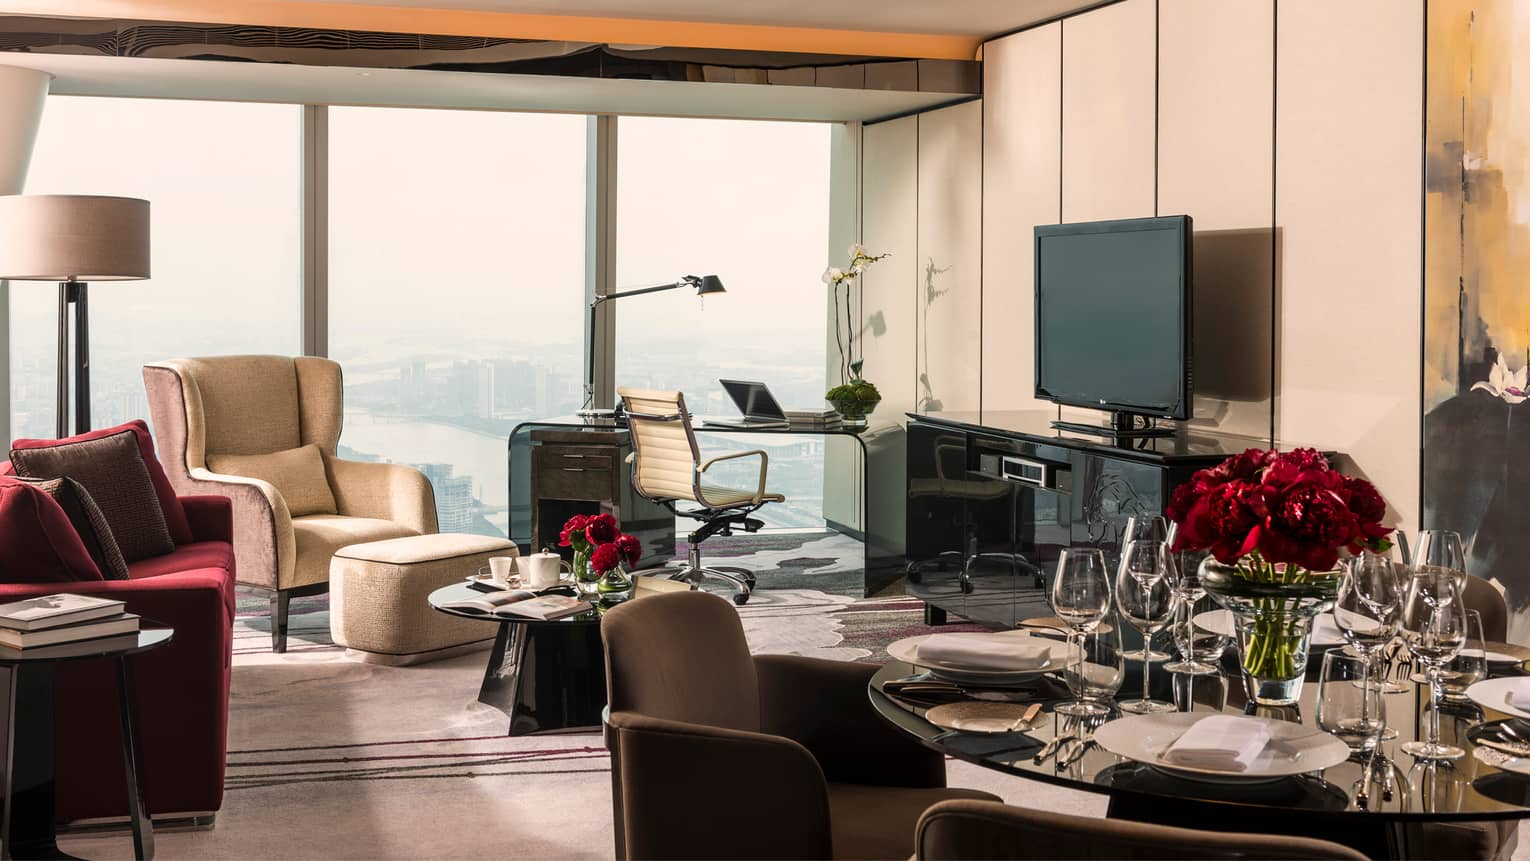 Deluxe Suite living area with round glass dining table, red sofa and desk by window with unobstructed city views